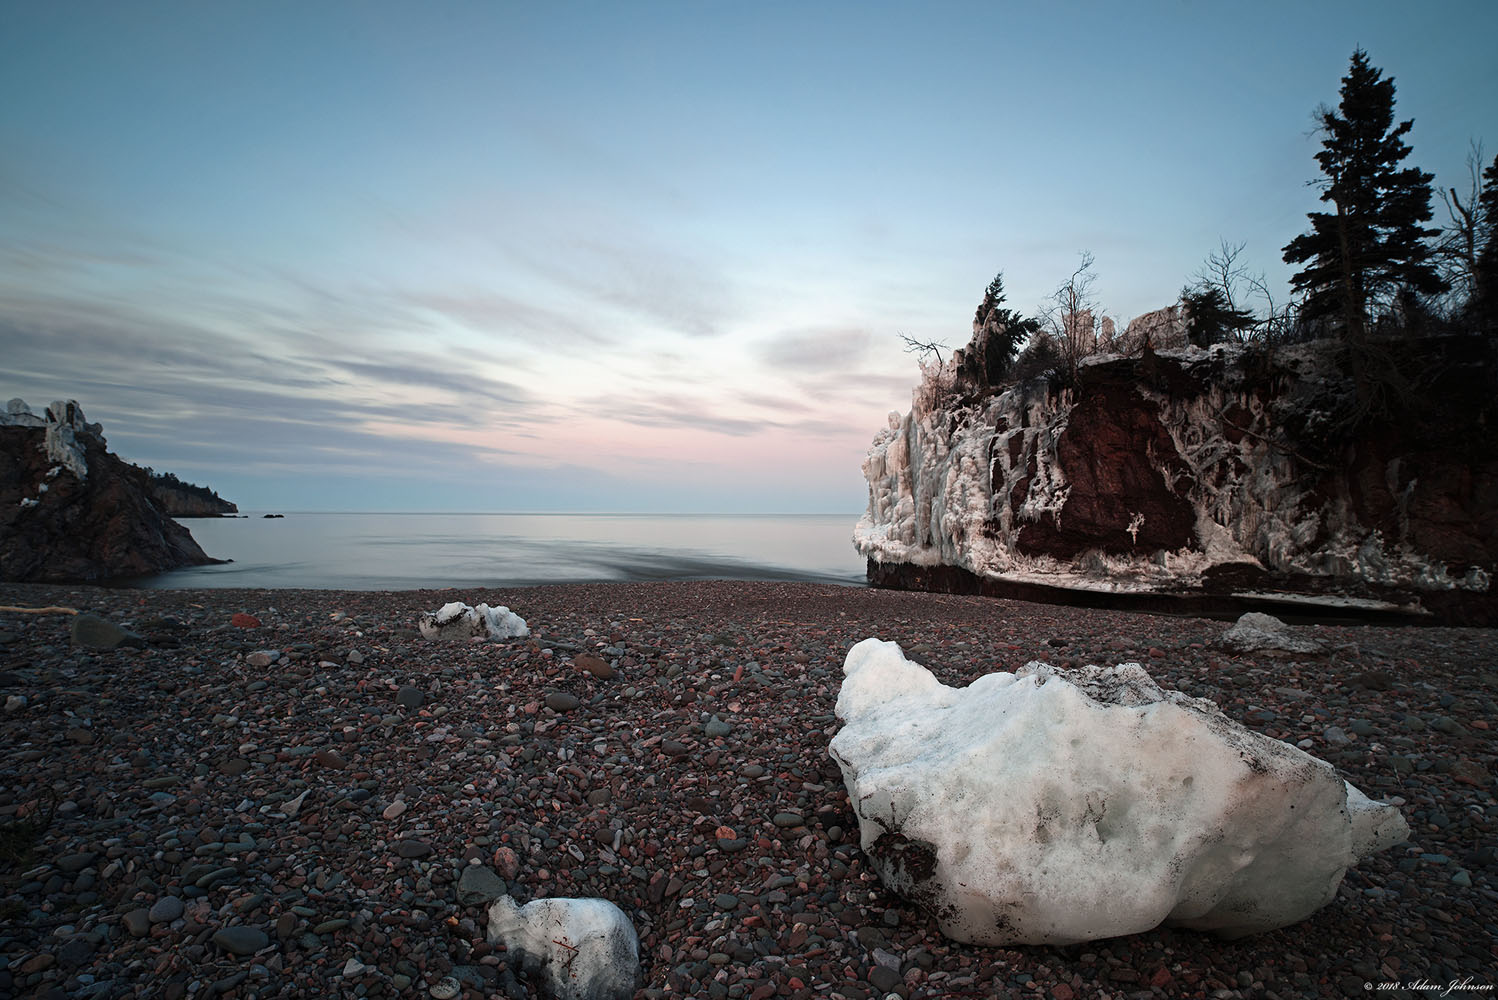 Ice on the beach at the mouth of the Baptism River following a two-day spring snow storm - Tettegouche State Park